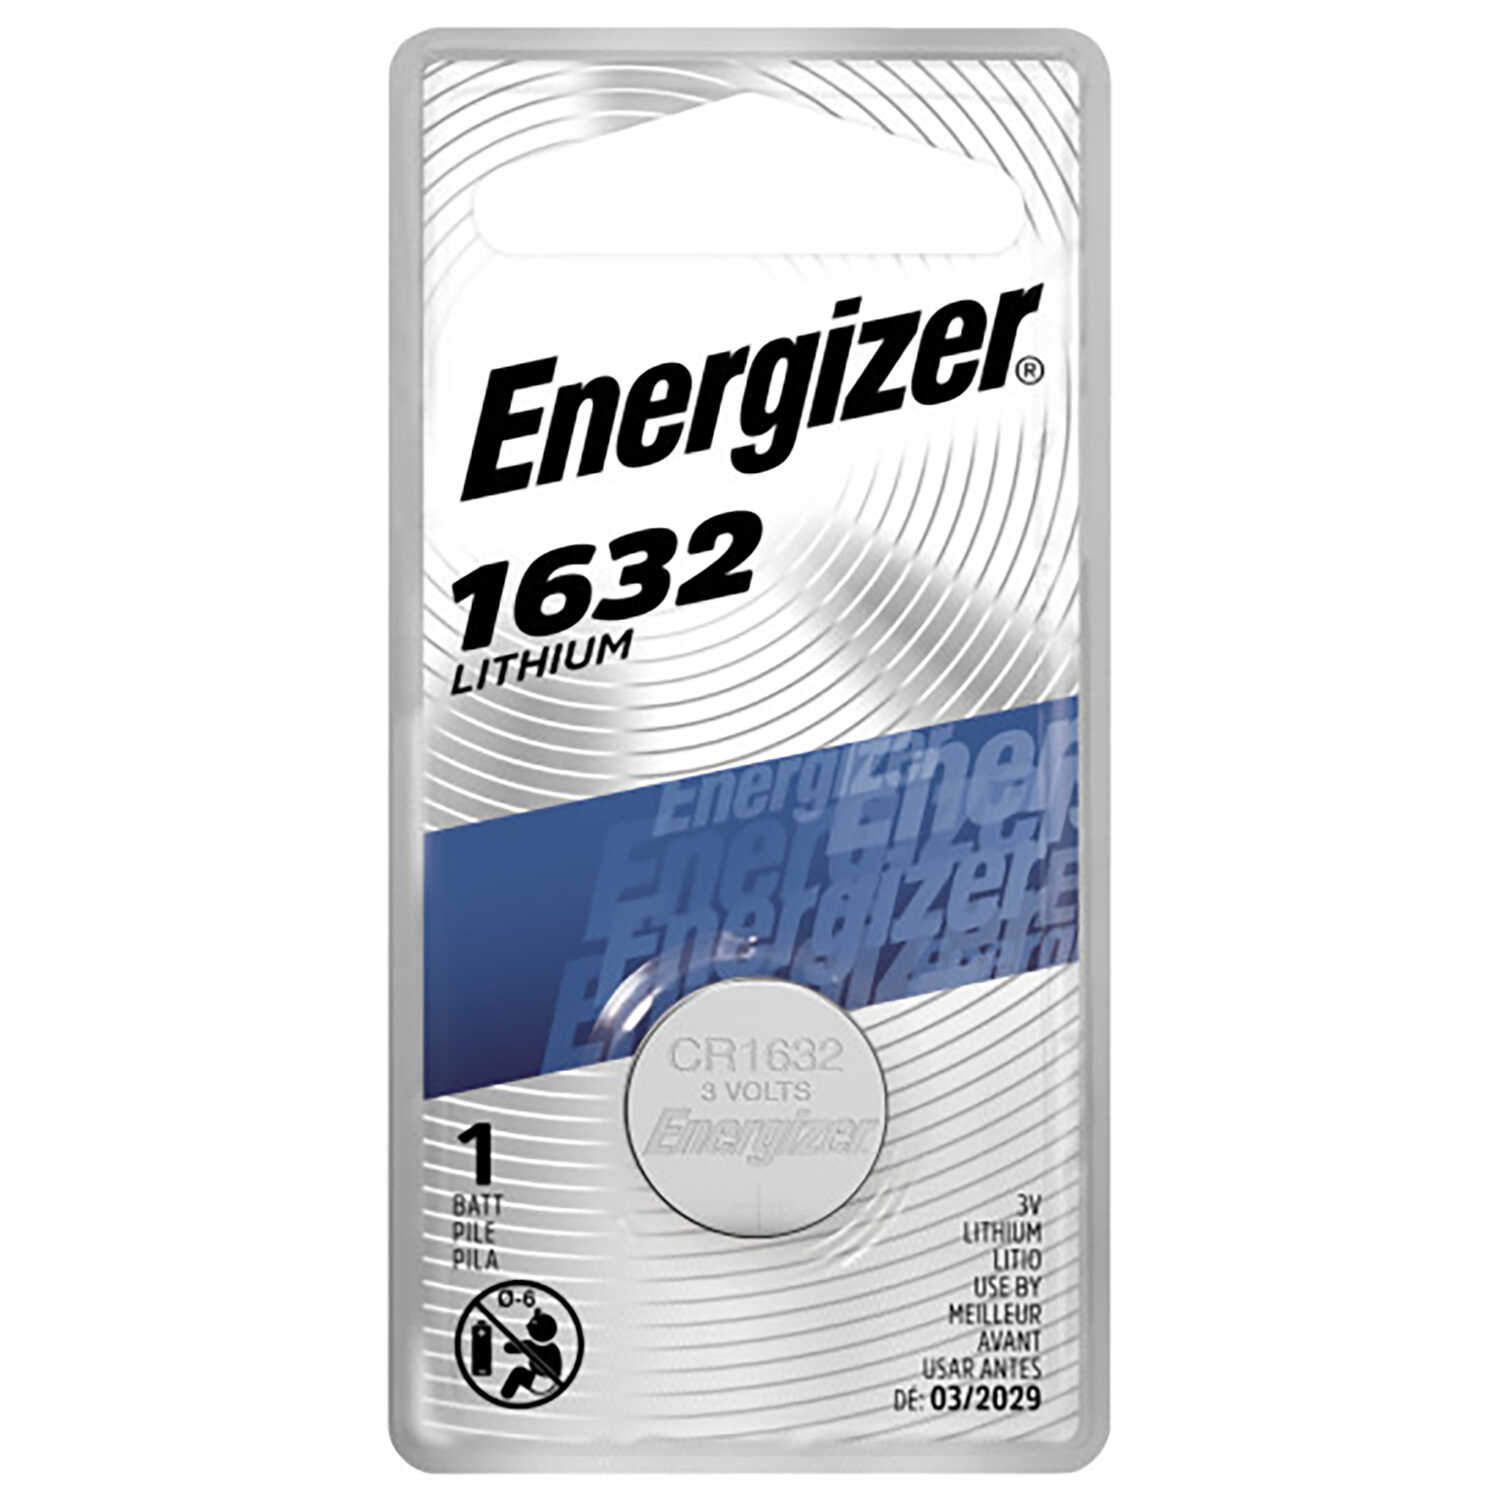 Energizer  Lithium  1632  3 volt Keyless Entry Battery  1 pk